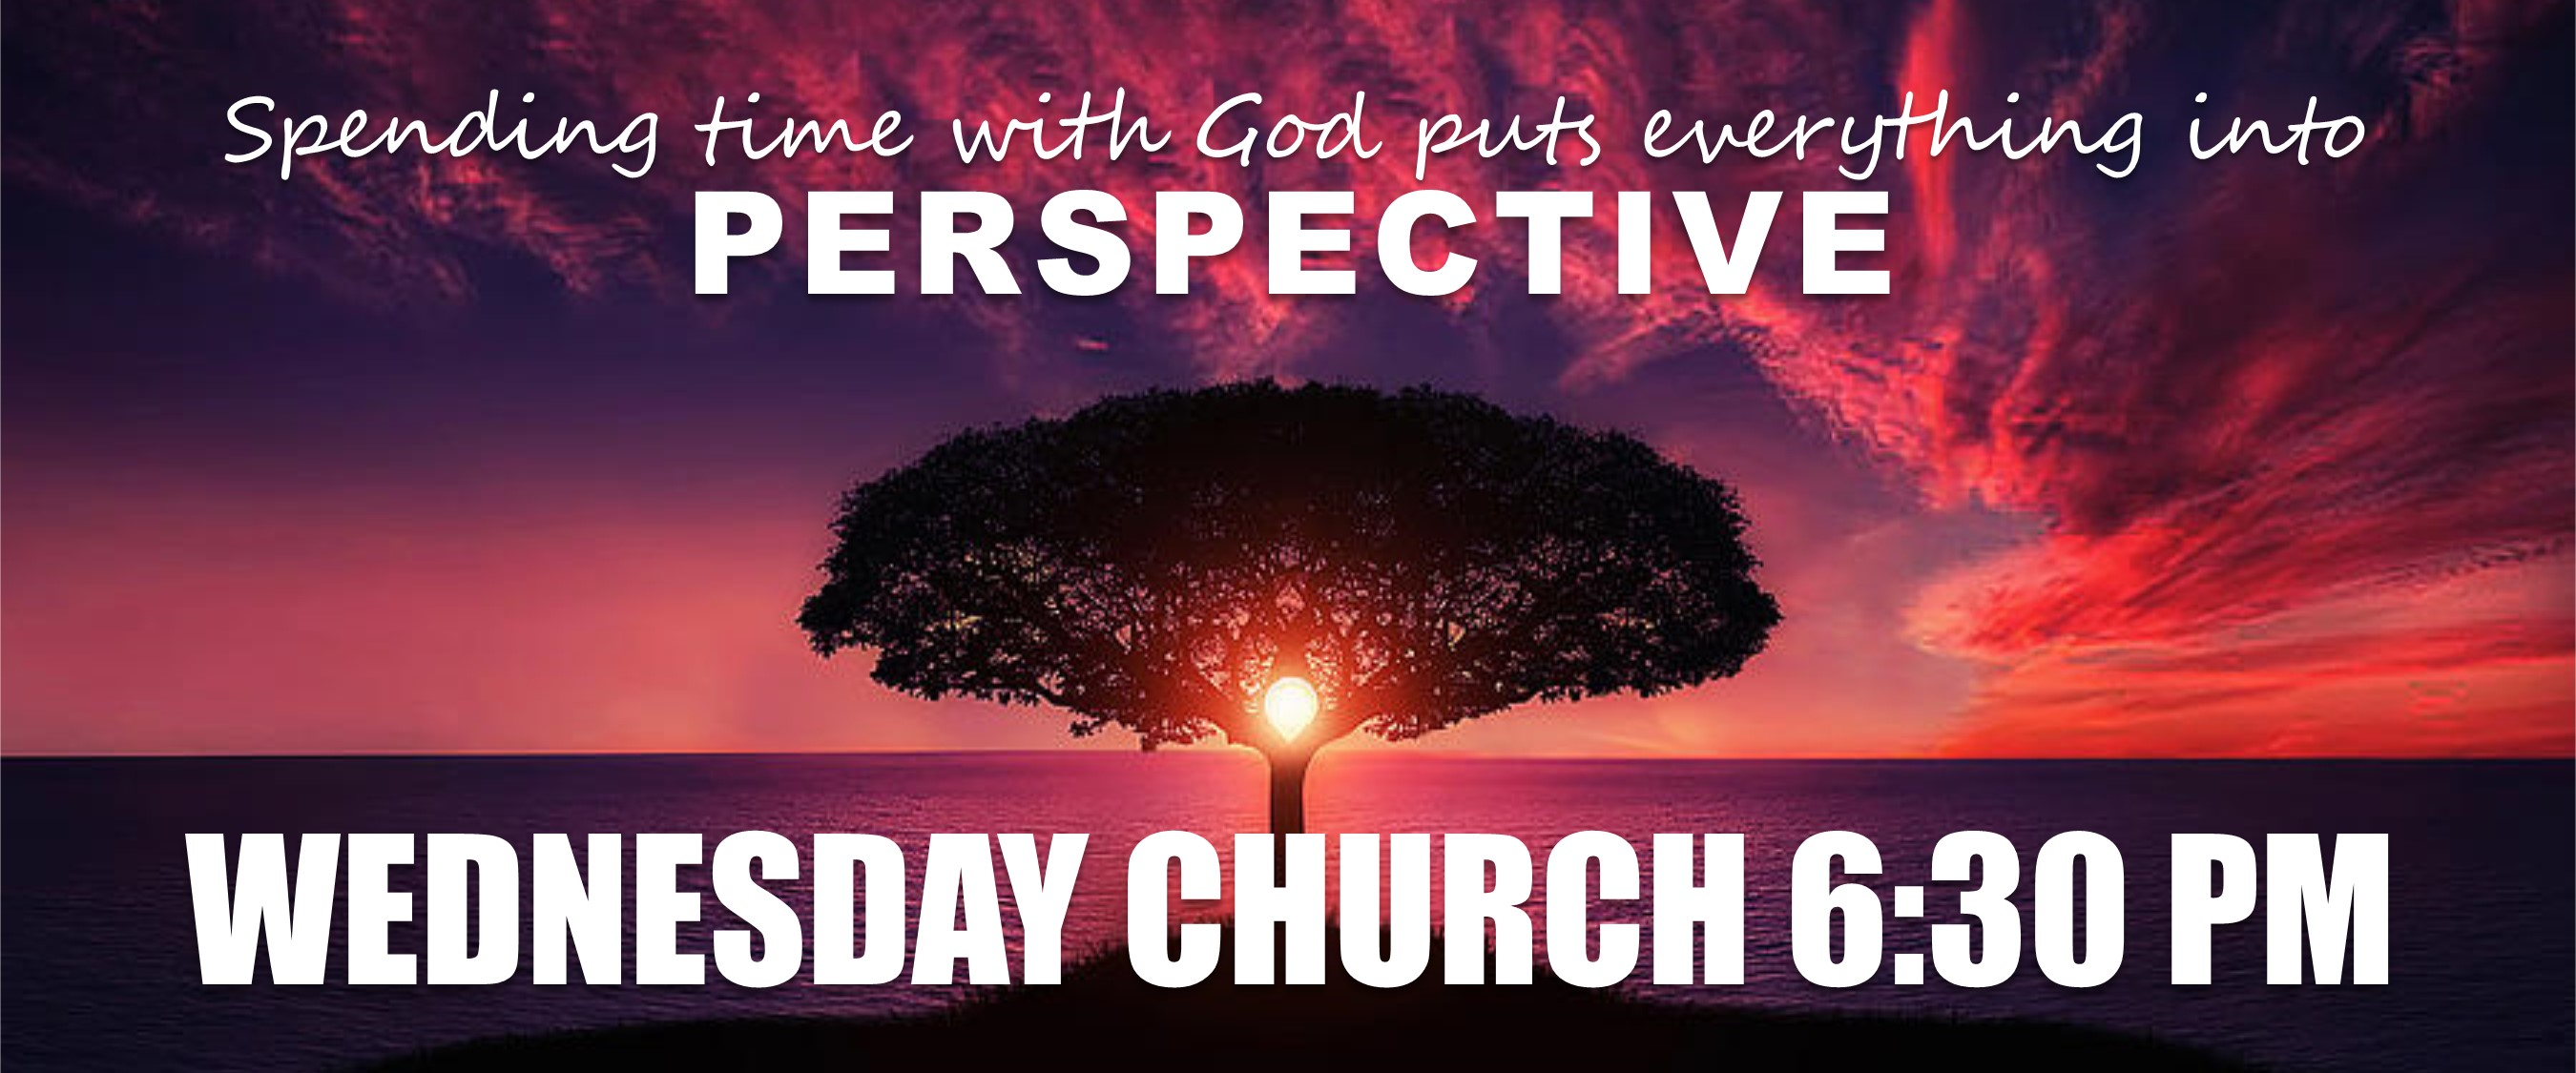 Wednesday Church Perspective